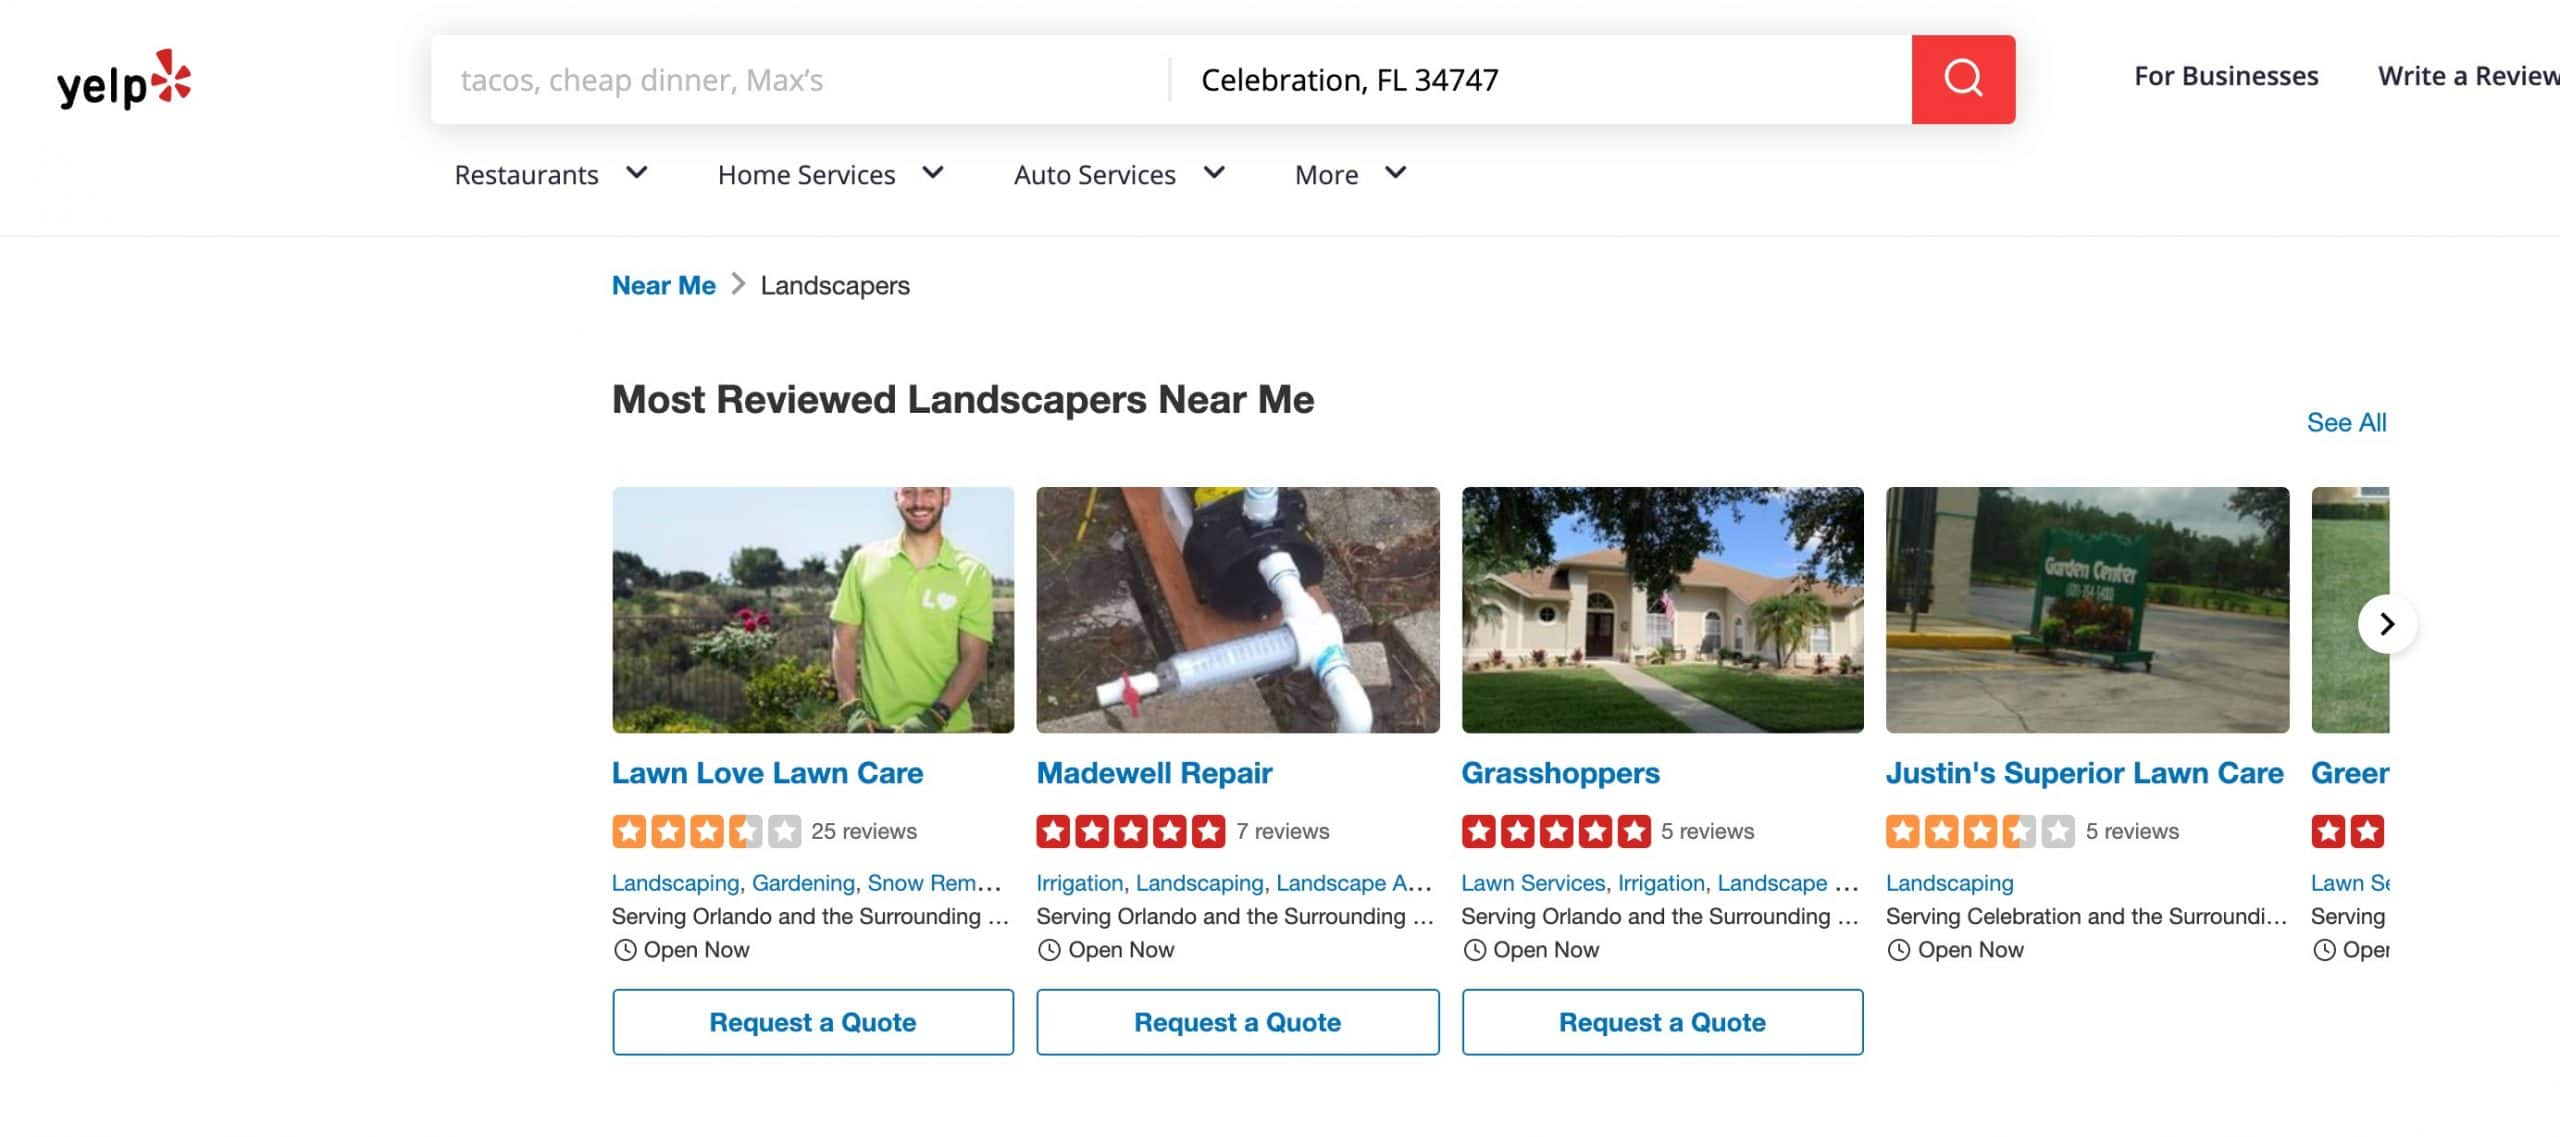 Most Reviewed Landscapers on Yelp